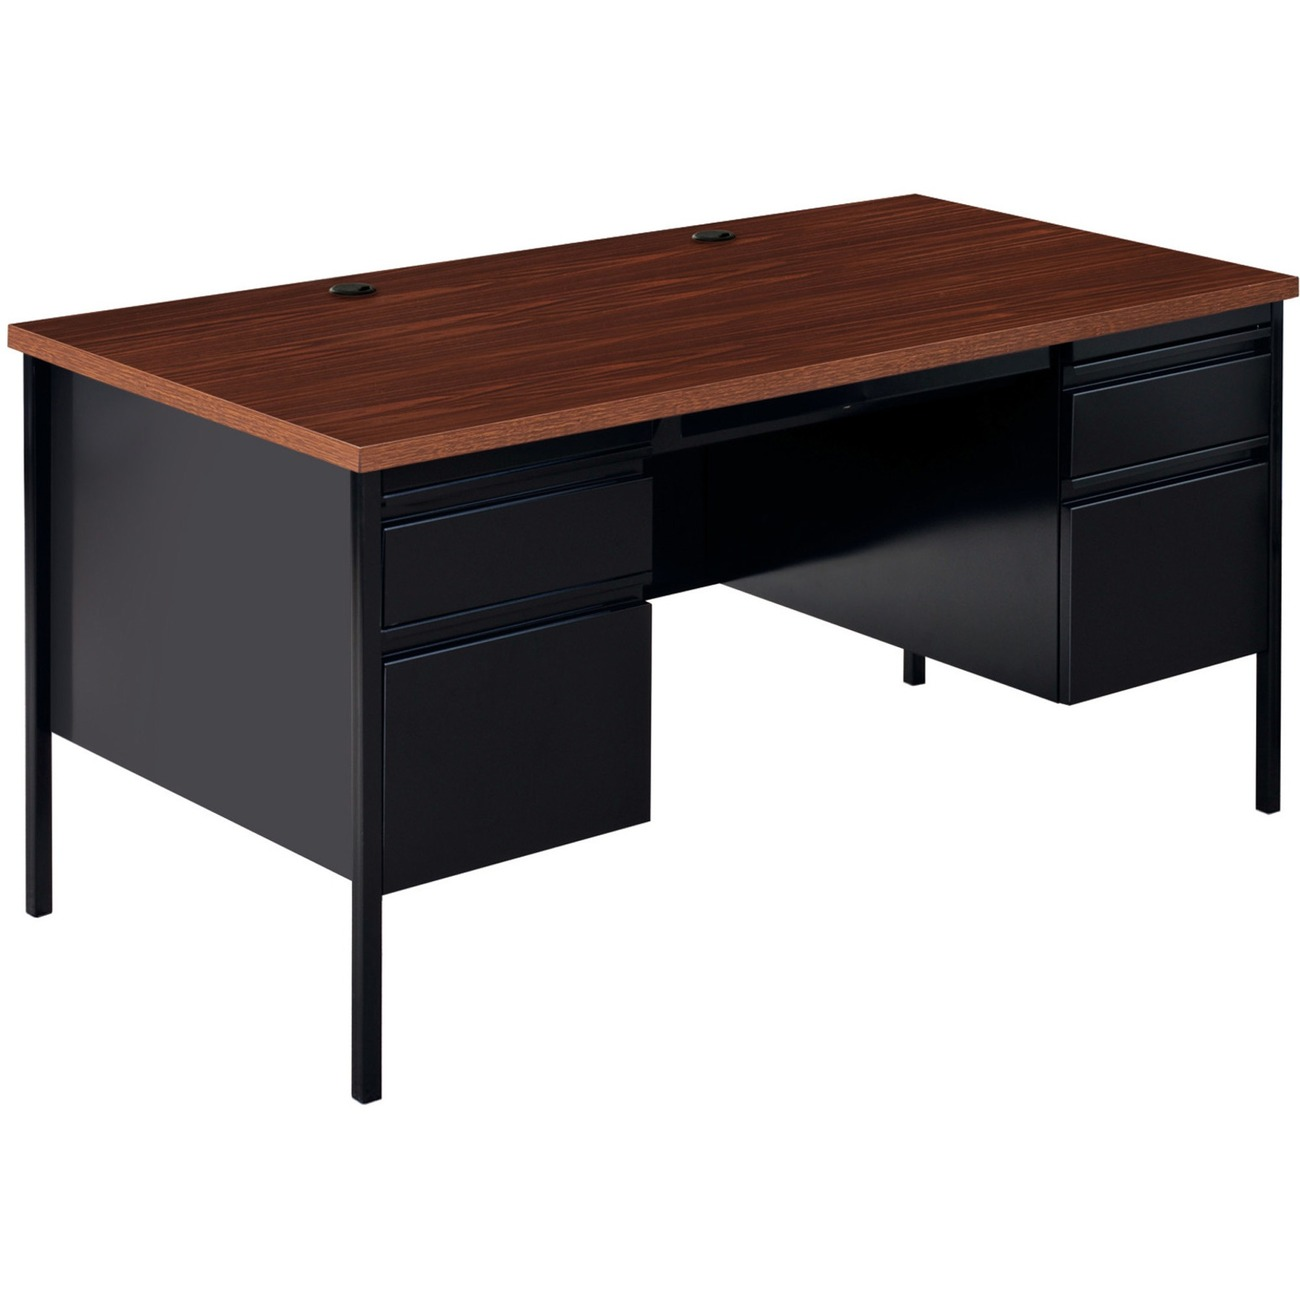 Double Pedestal Desk Is Part Of The Lorell Fortress Series A Practical And Professional Solution Ideal For Business Government Educational